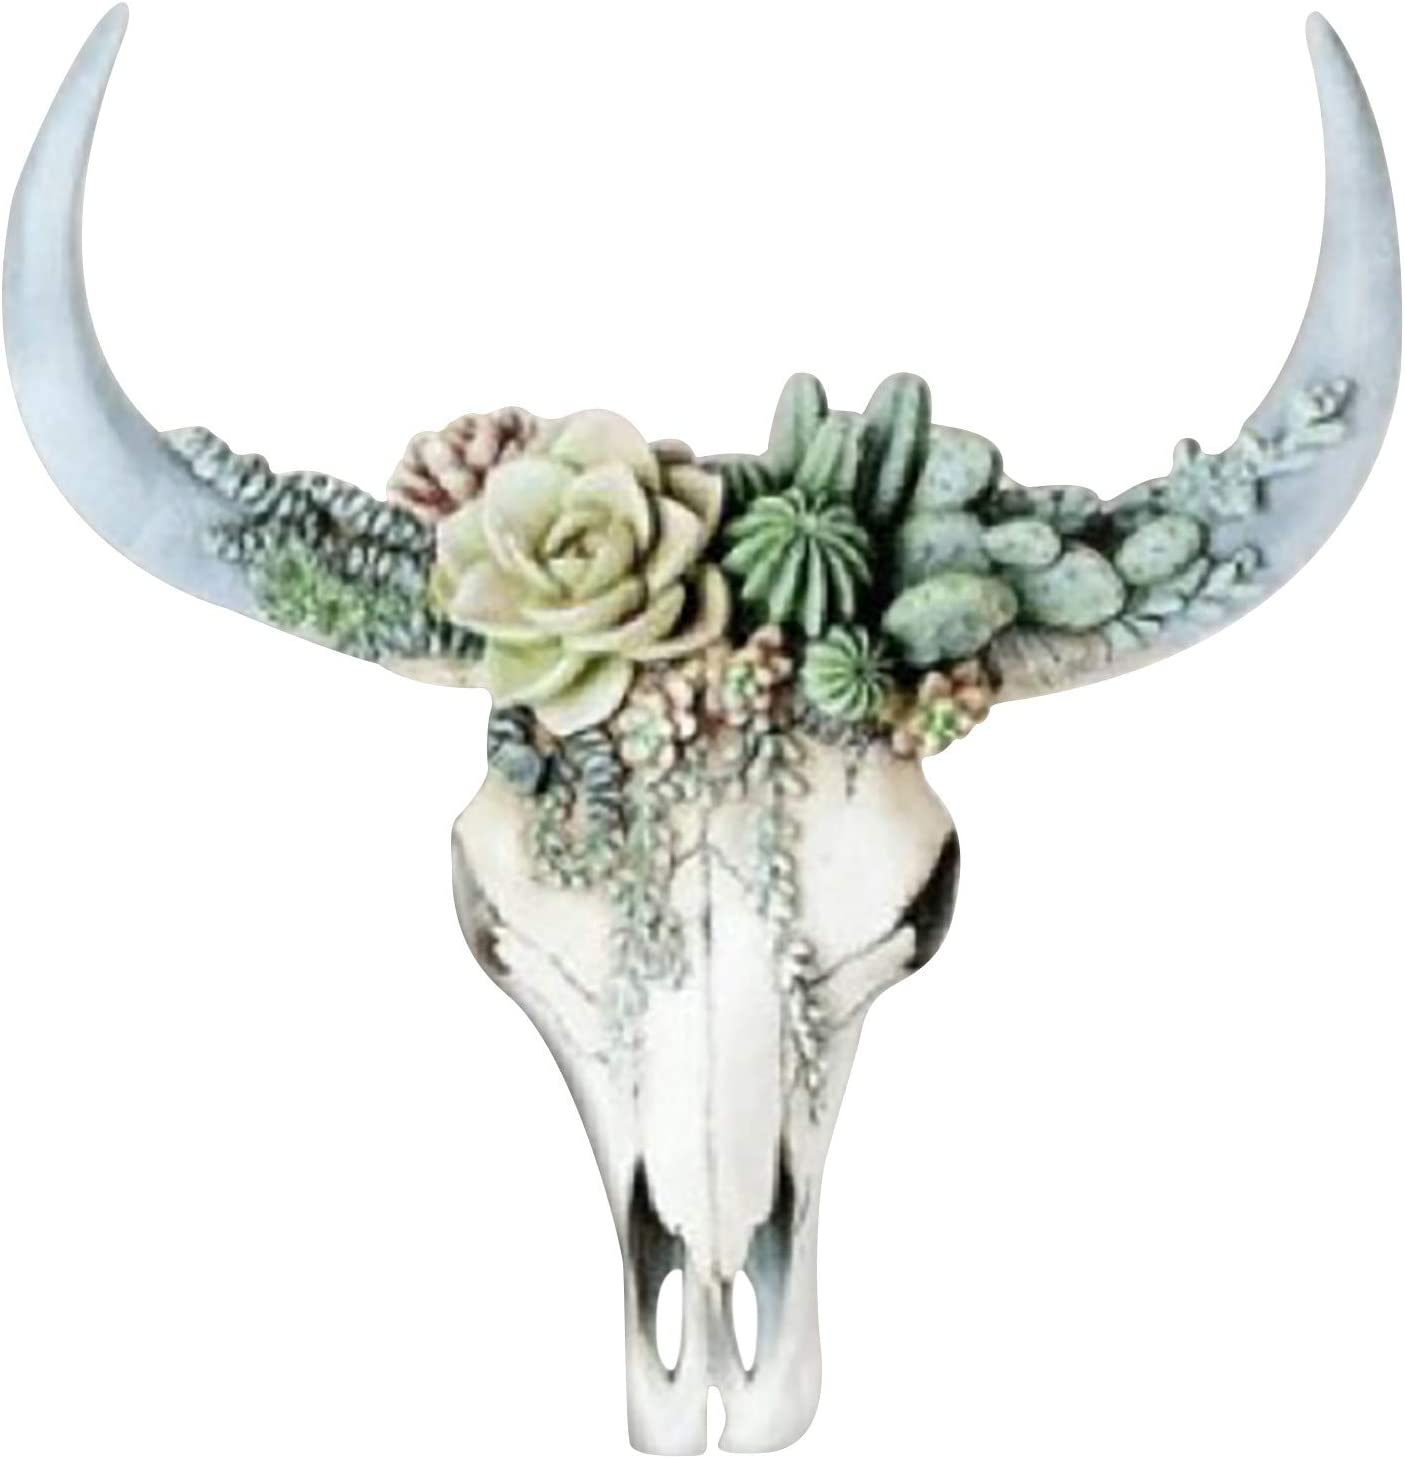 Cow Skull Decoration, Resin Wall Carving Simulation 3D Cow Head Wall Hanging Crafts Home Decor, Best Gift for Mother's Day (Green)